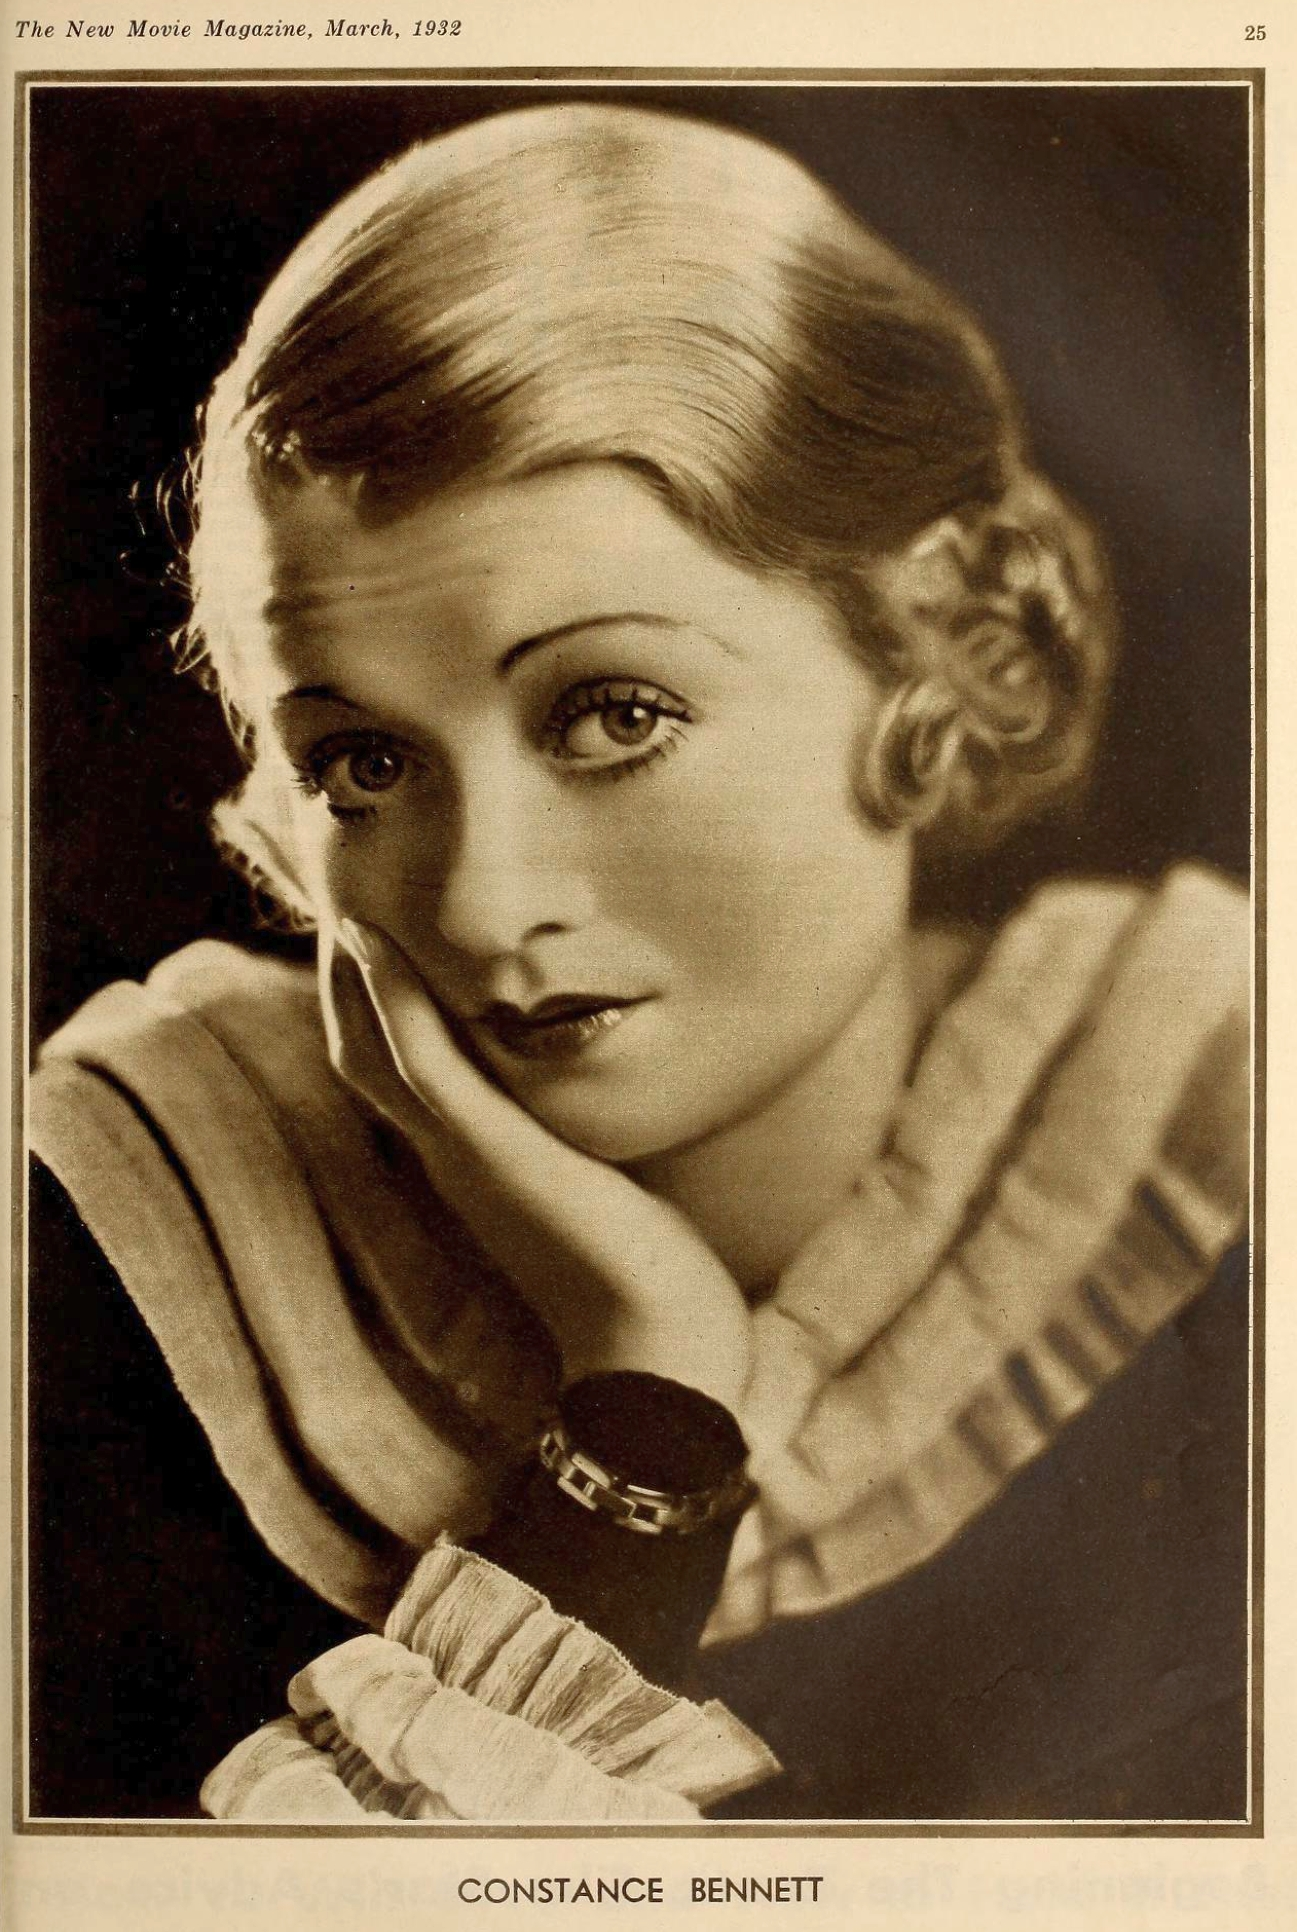 constance bennett the new movie magazine march 1932a